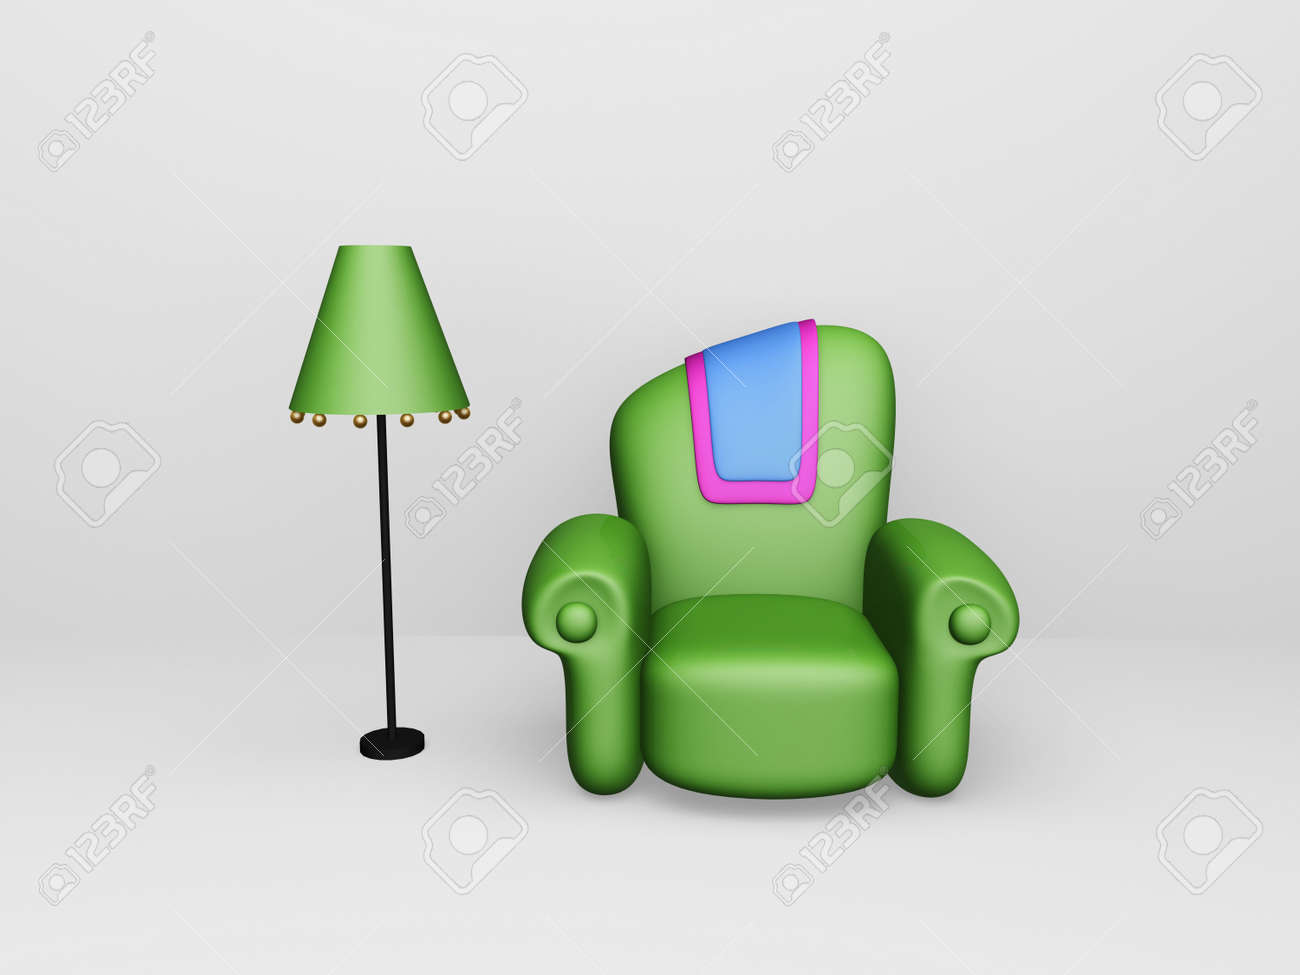 toon sofa and floor lamp in white space Stock Photo - 9579929